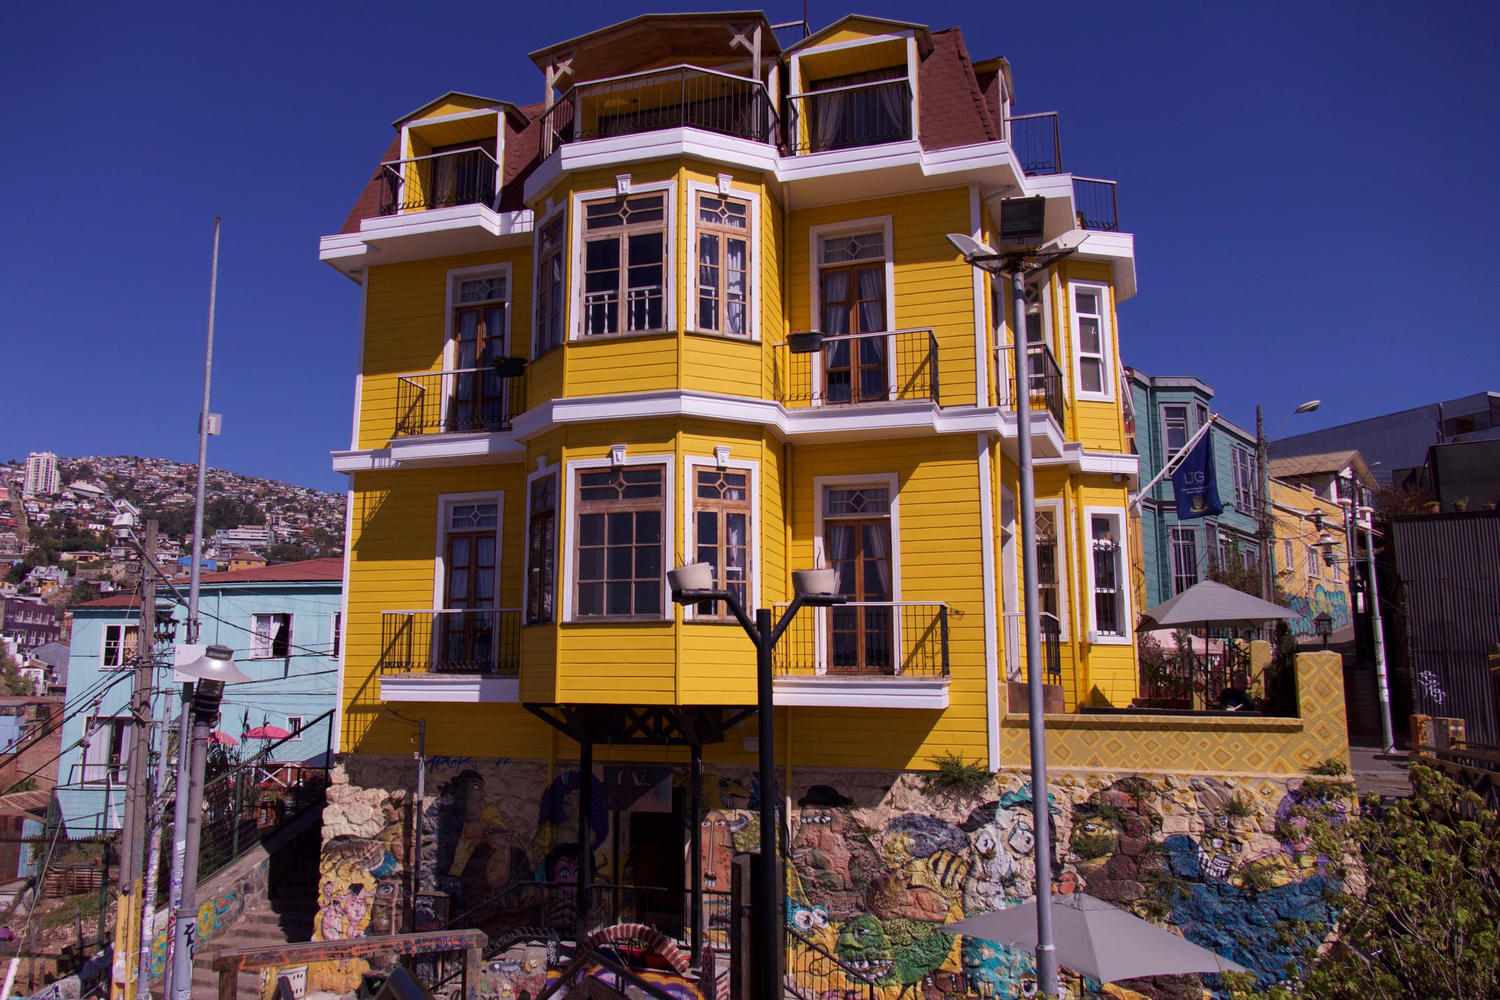 Colourful houses and street art in Valparaiso